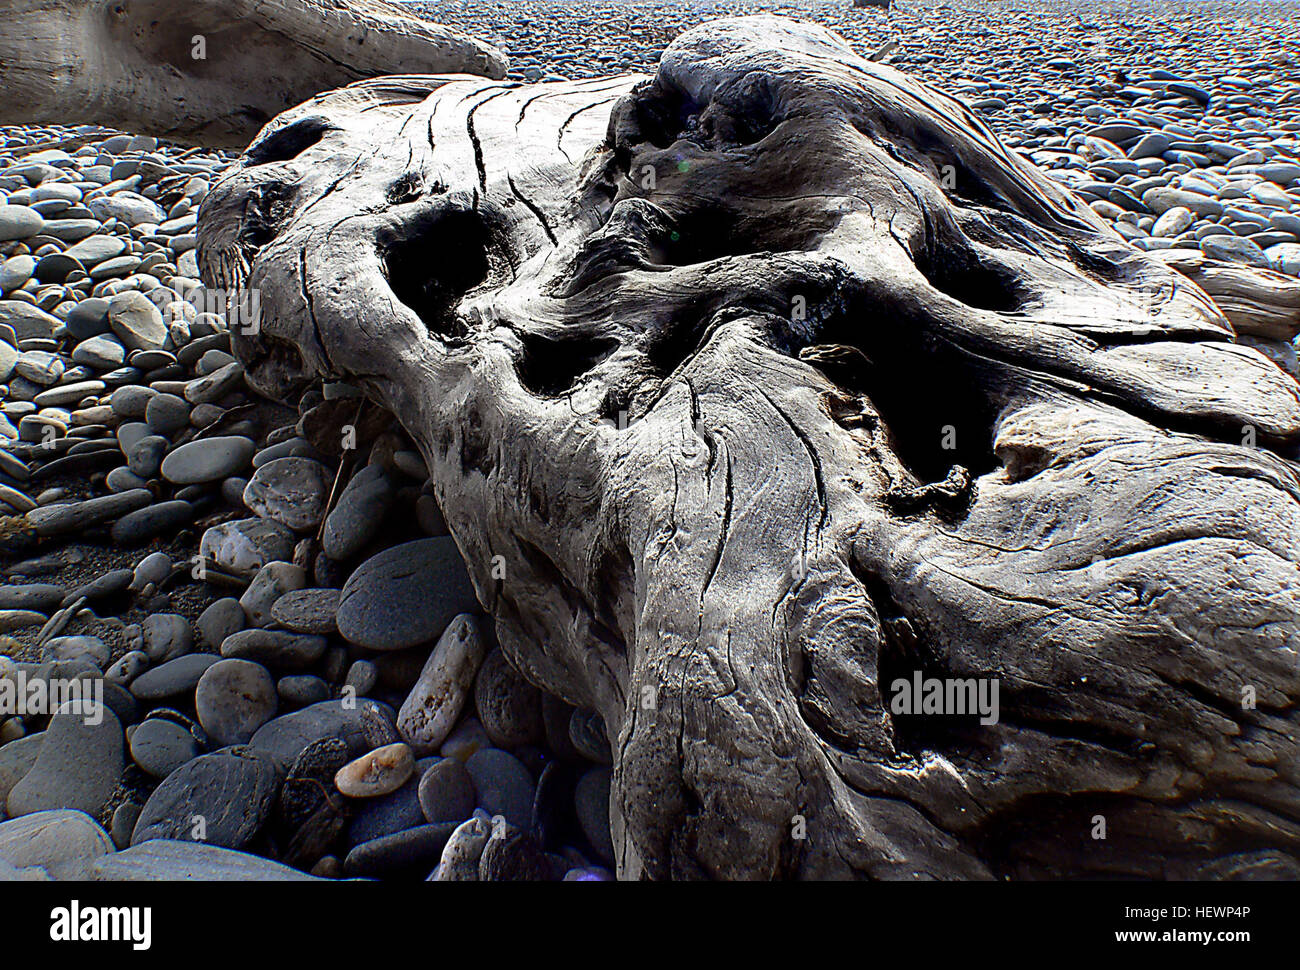 Driftwood is wood that has been washed onto a shore or beach of a sea, lake, or river by the action of winds, tides - Stock Image